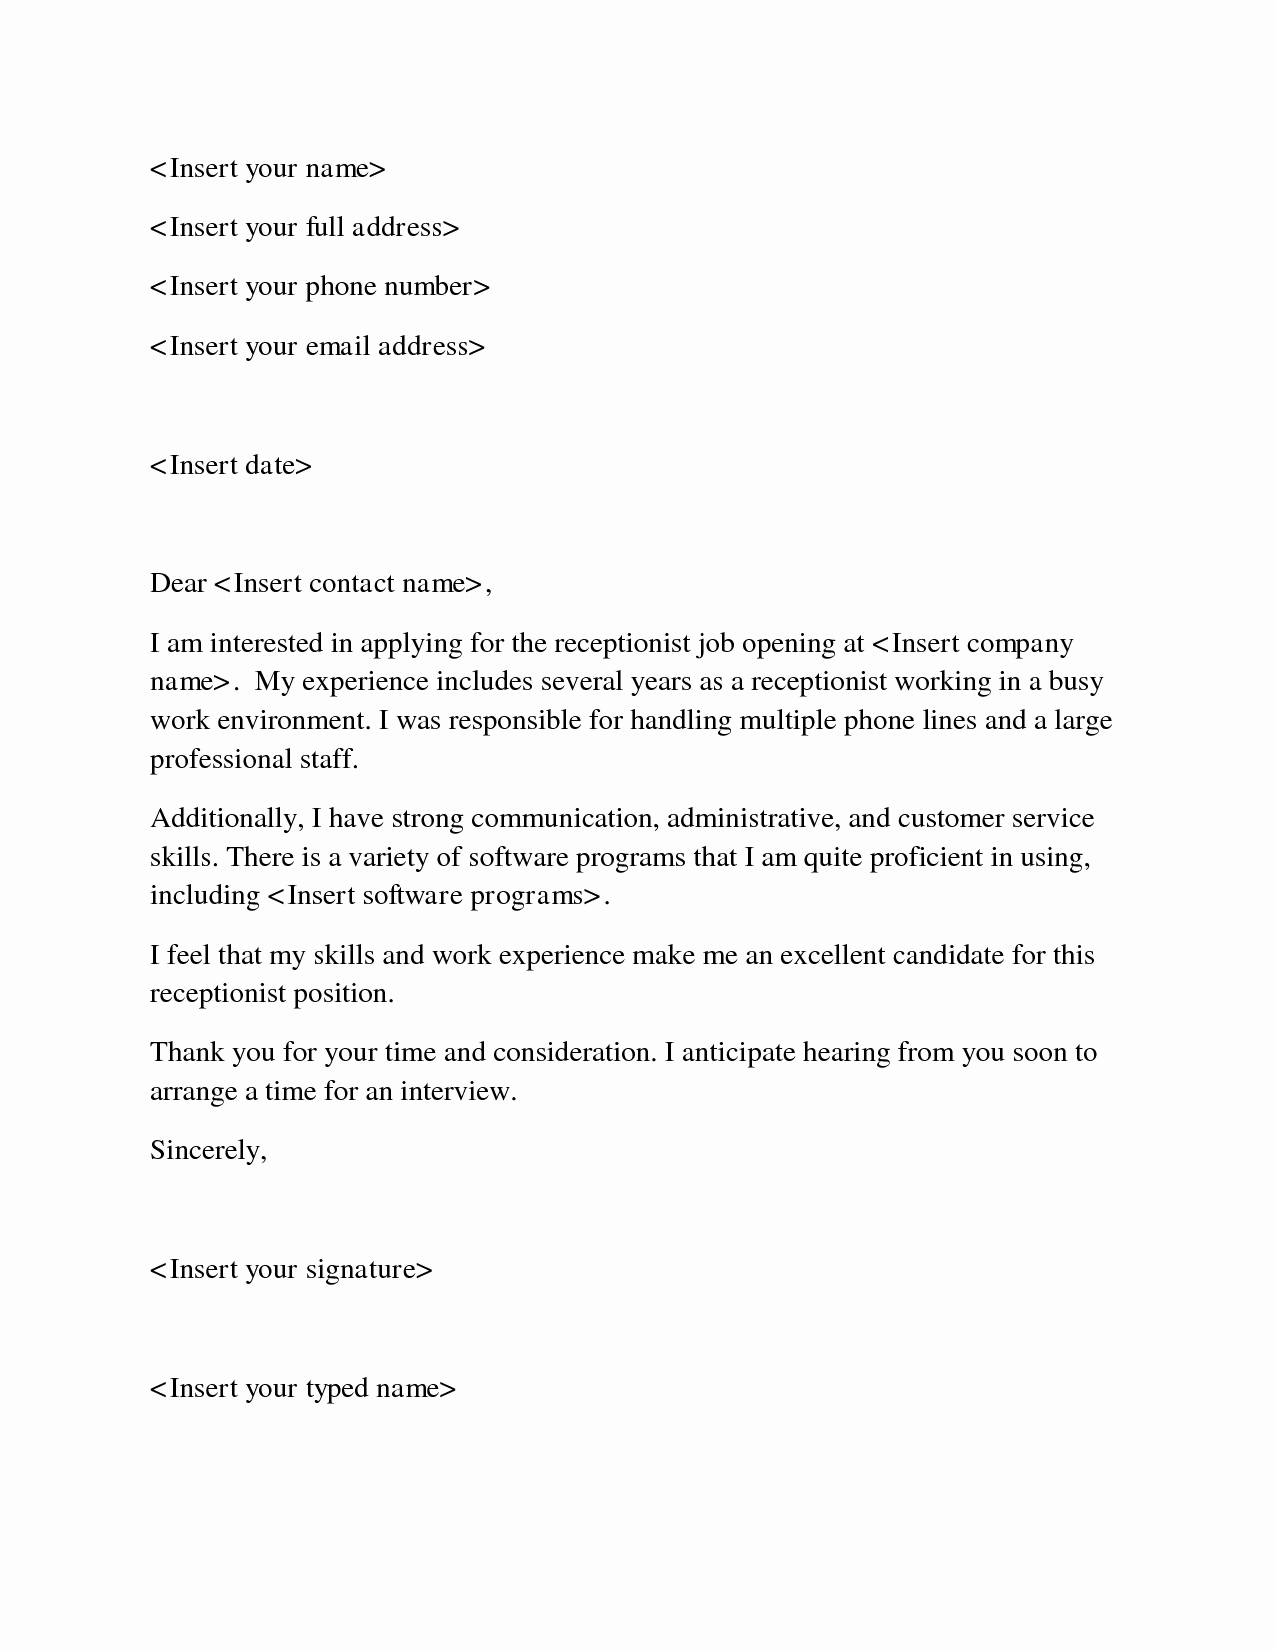 Quick and Easy Cover Letters Lovely Cover Letter Help Receptionist Resume top Essay